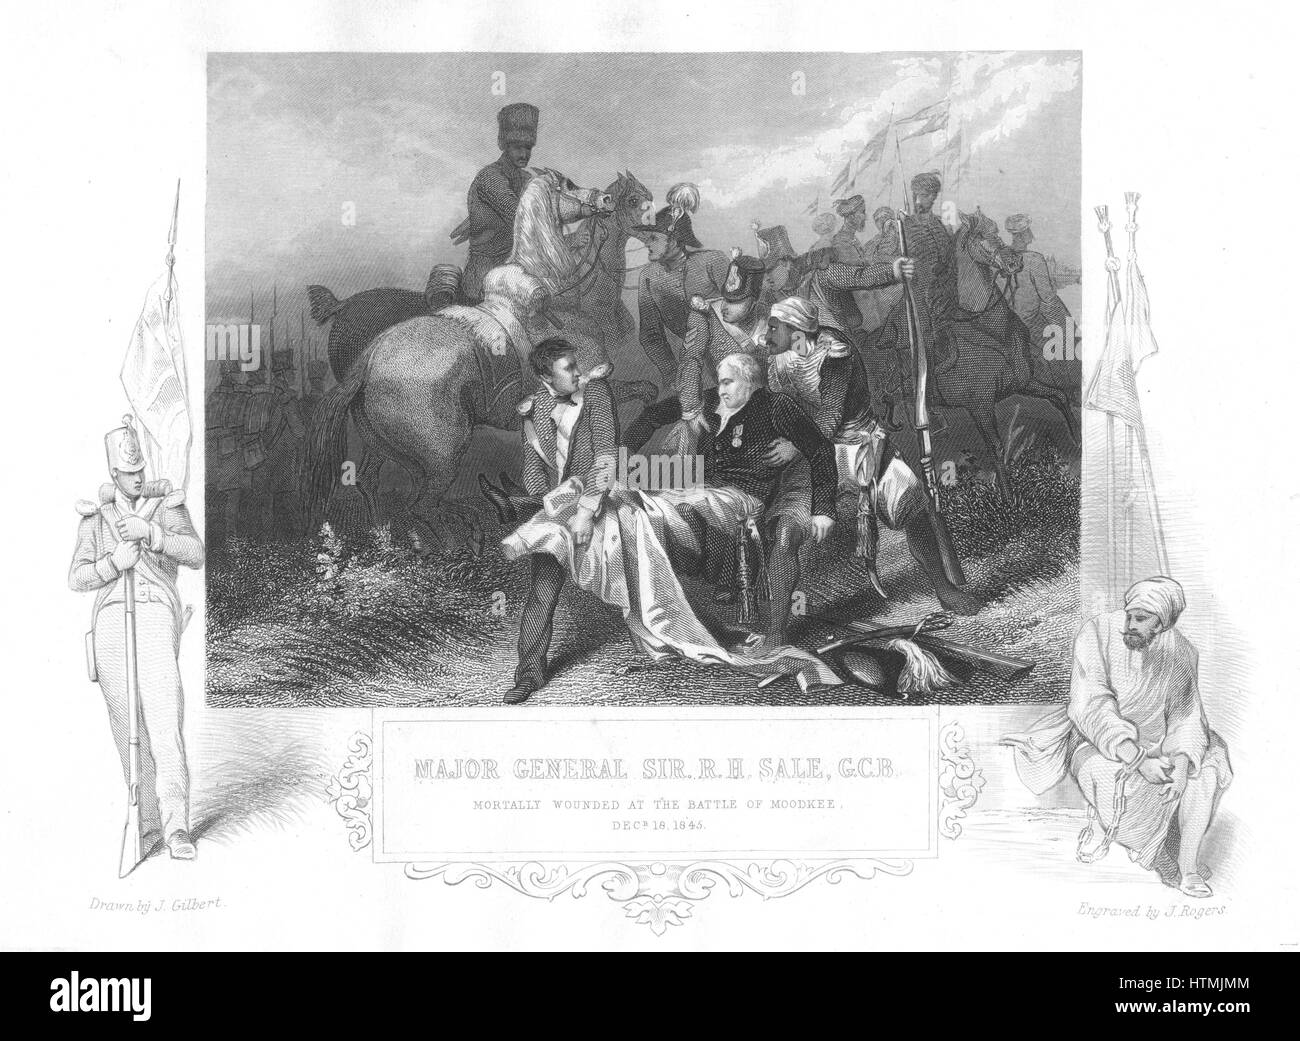 Robert Henry Sale (1782-1845) English general. Mortally wounded at Battle of Mudkhi (Moodkee), 18 December 1845, - Stock Image